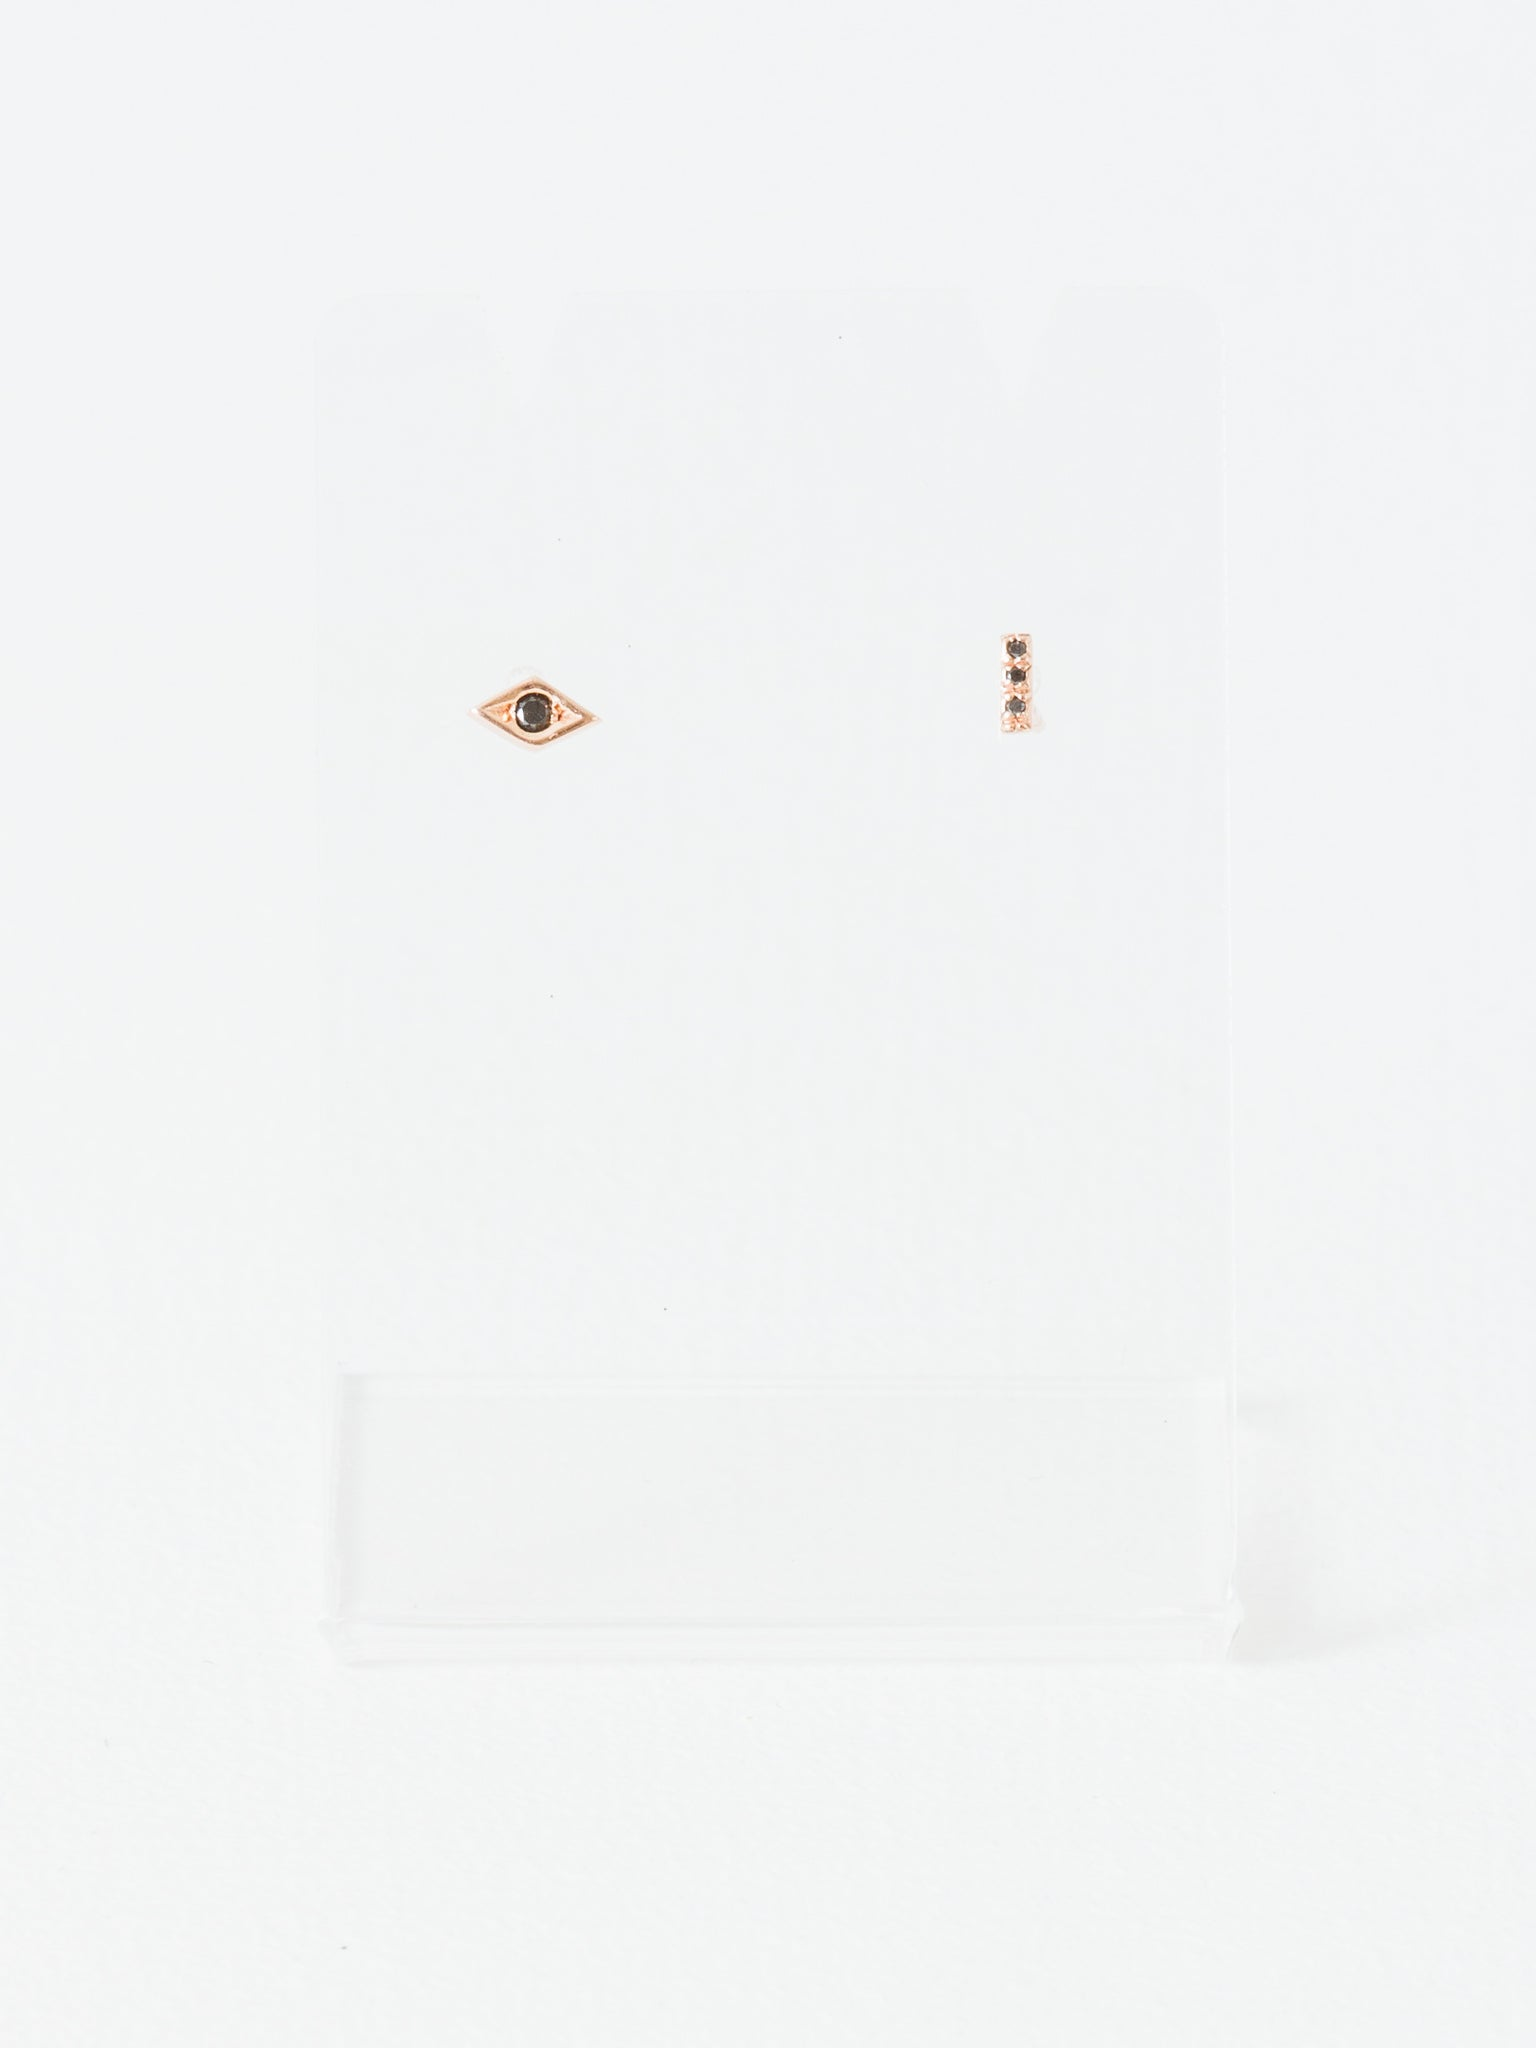 jewelry in lyst metallic gallery normal medium product line taylor sia gold stud earrings dot